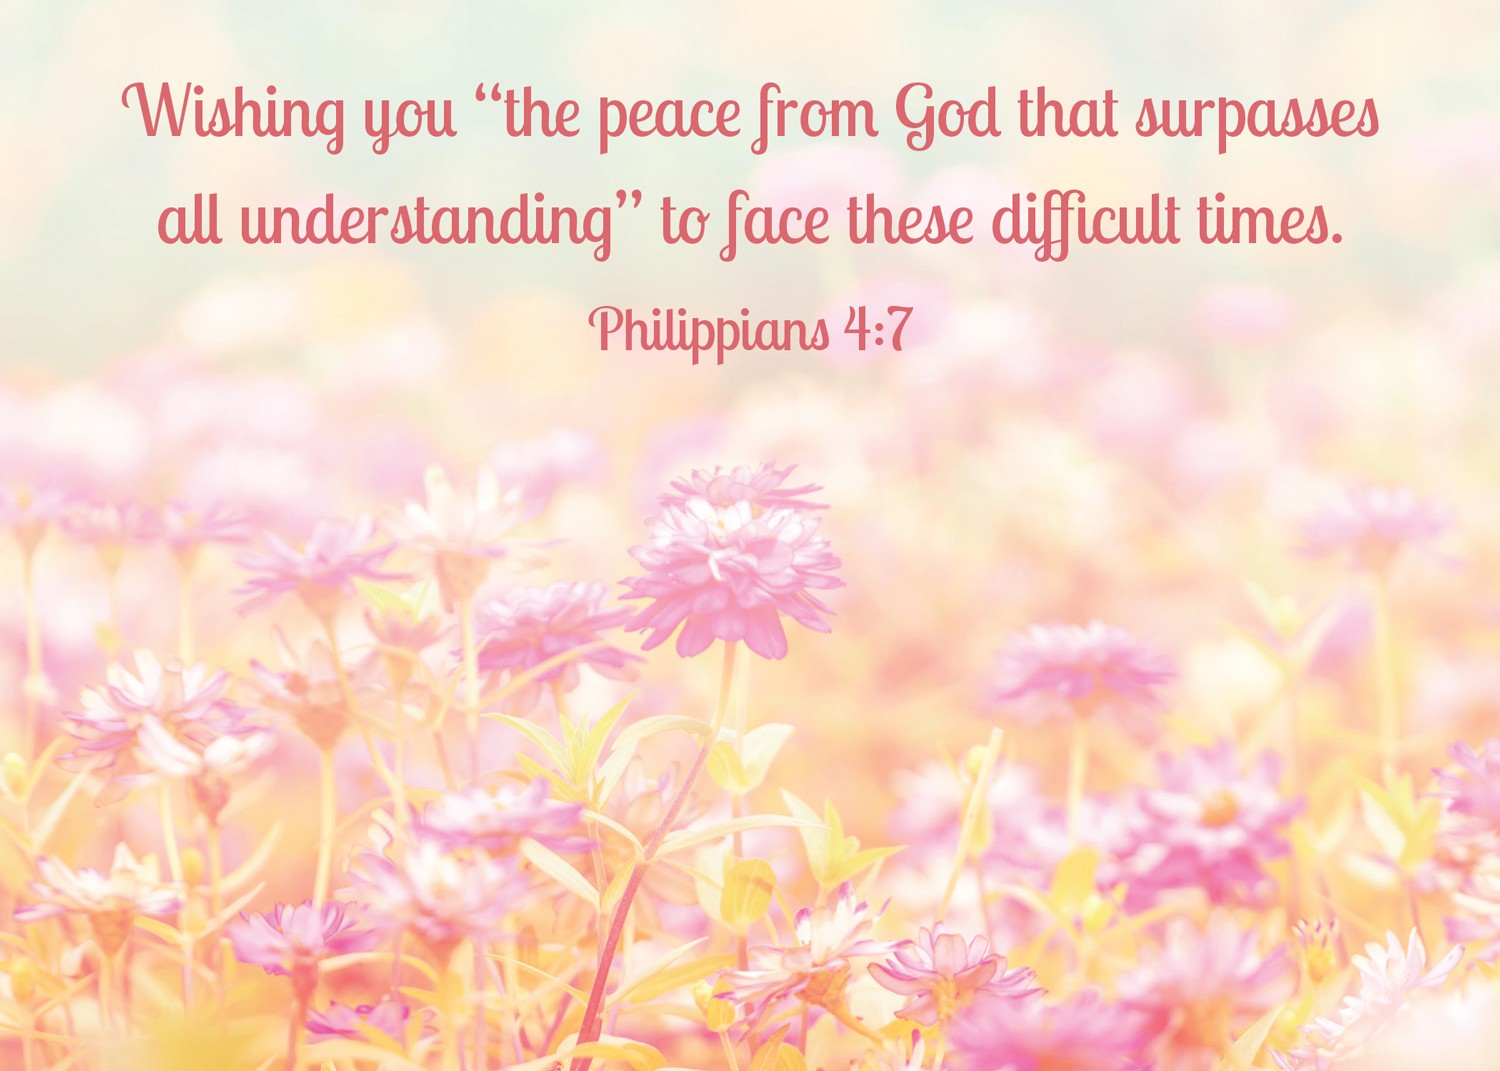 """Wishing you """"the peace from God that surpasses all understanding"""" to face these difficult times. (Philippians 4:7)"""